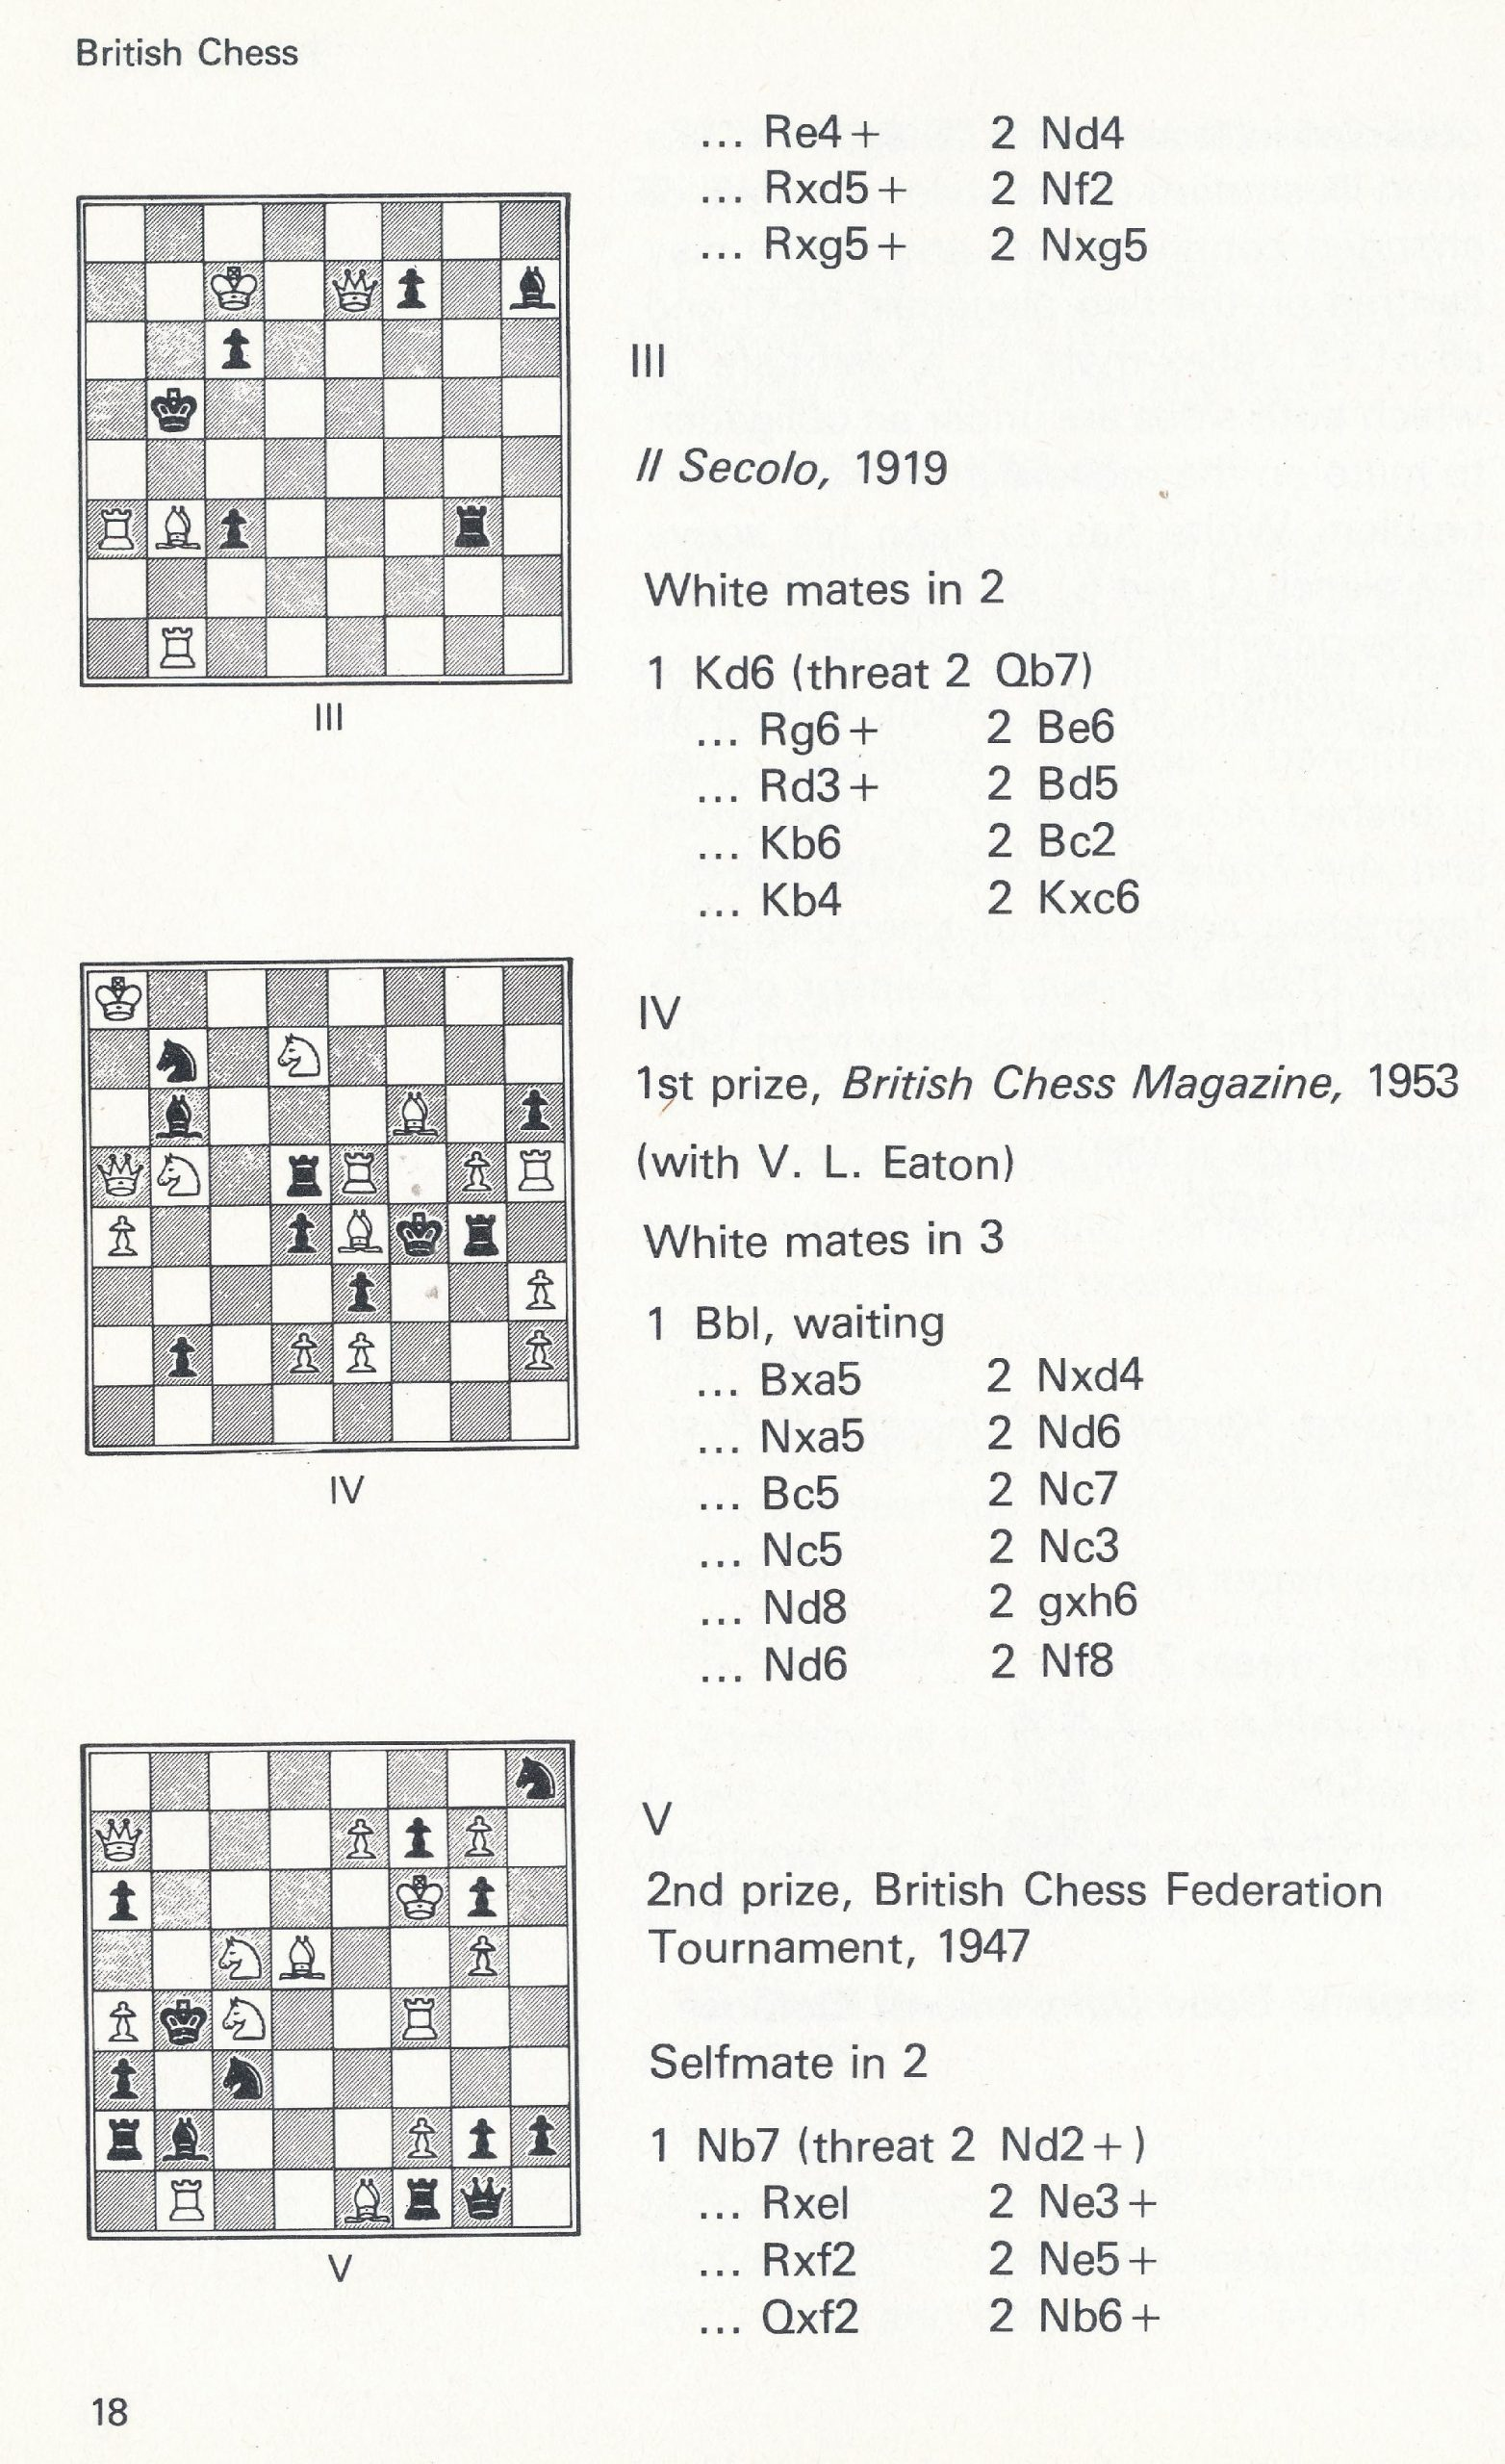 British Chess, Pergamon Press, 1983. page 18